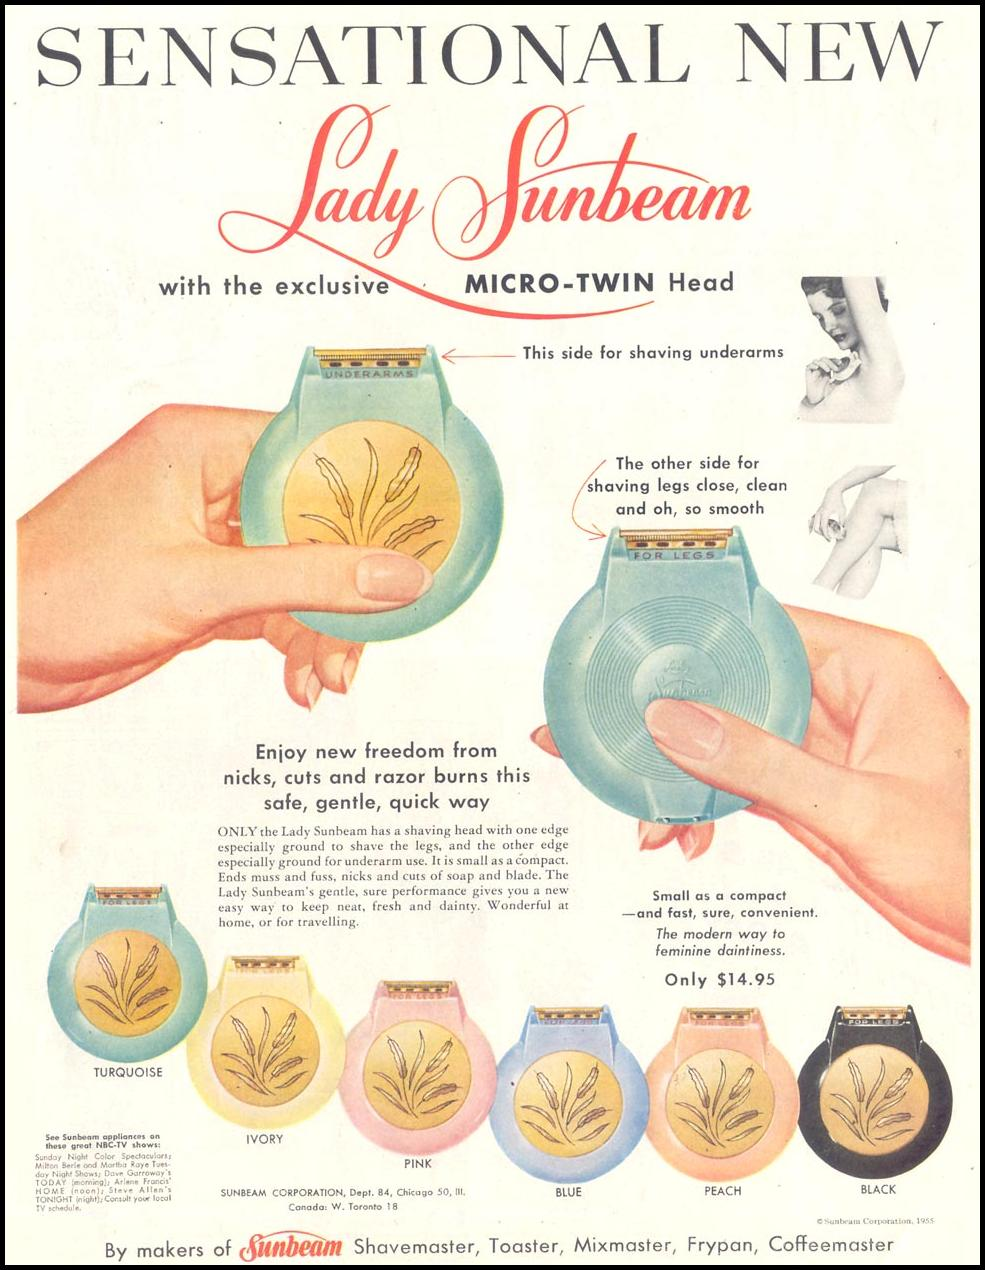 LADY SUNBEAM LADIES' SHAVER LIFE 10/29/1955 p. 72